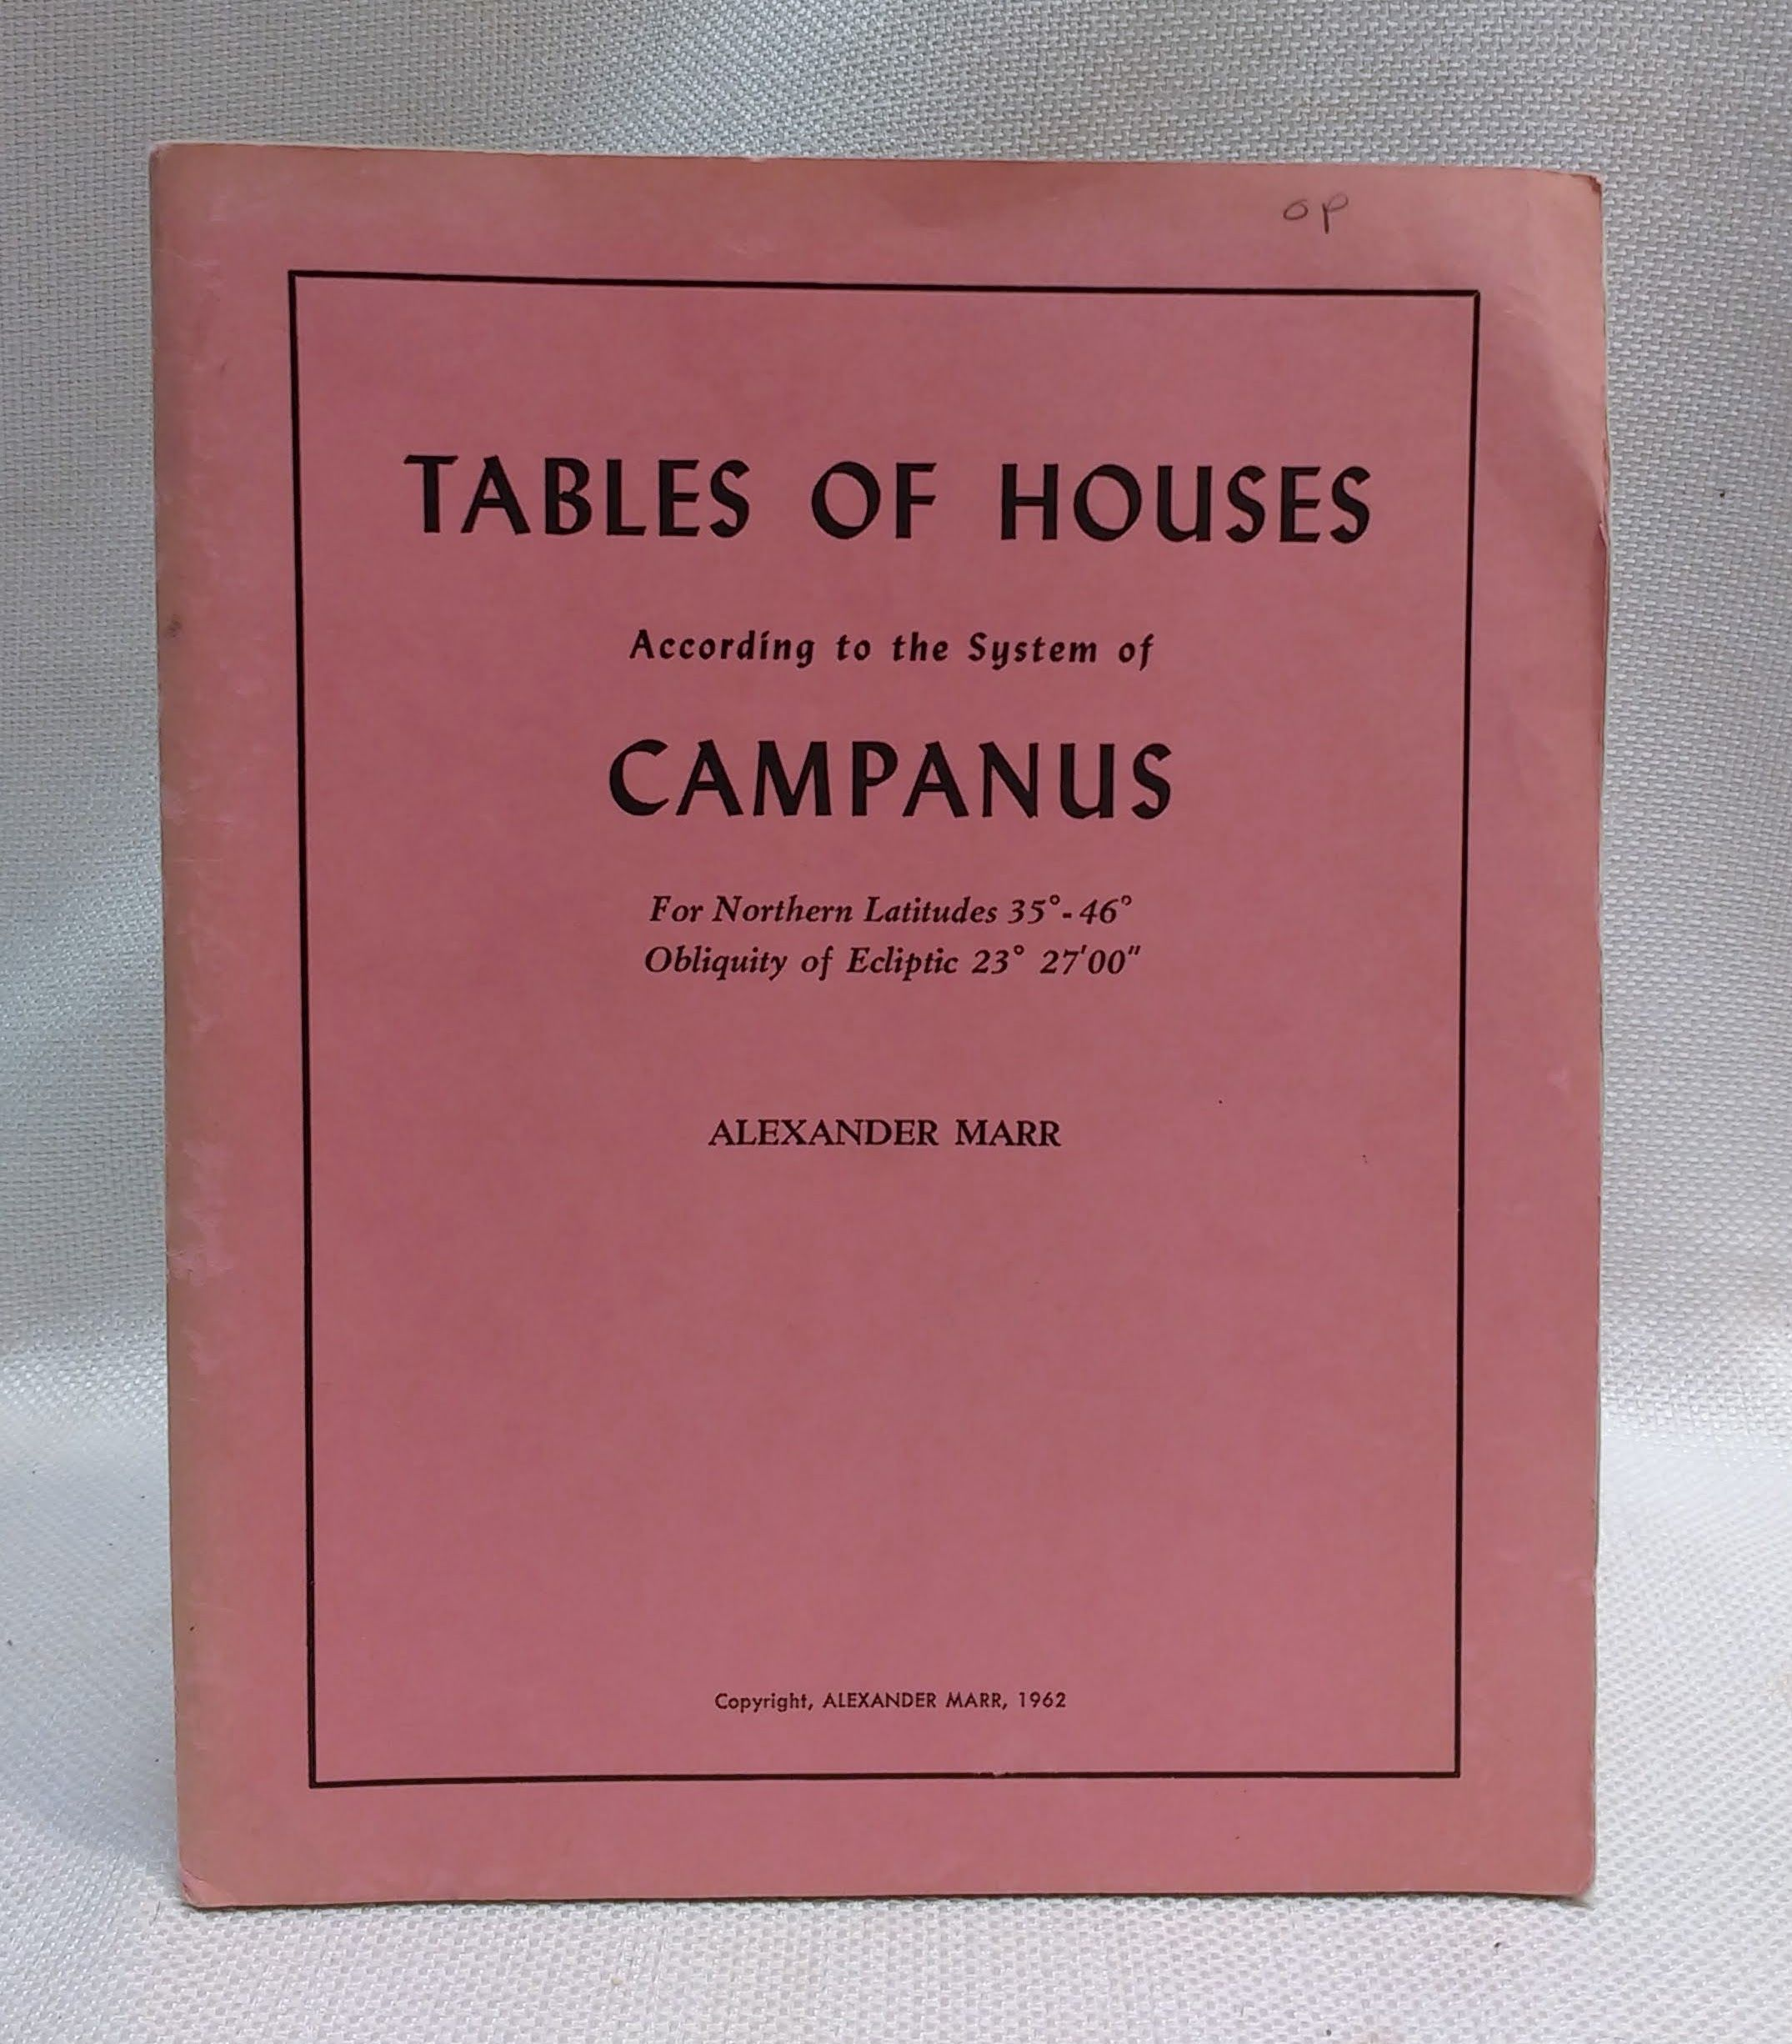 """Image for Tables of Houses according to the System of Campanus for Northern Latitudes 35 - 46 degrees. Obliquity of Eclipse 23 degrees 27'00"""""""